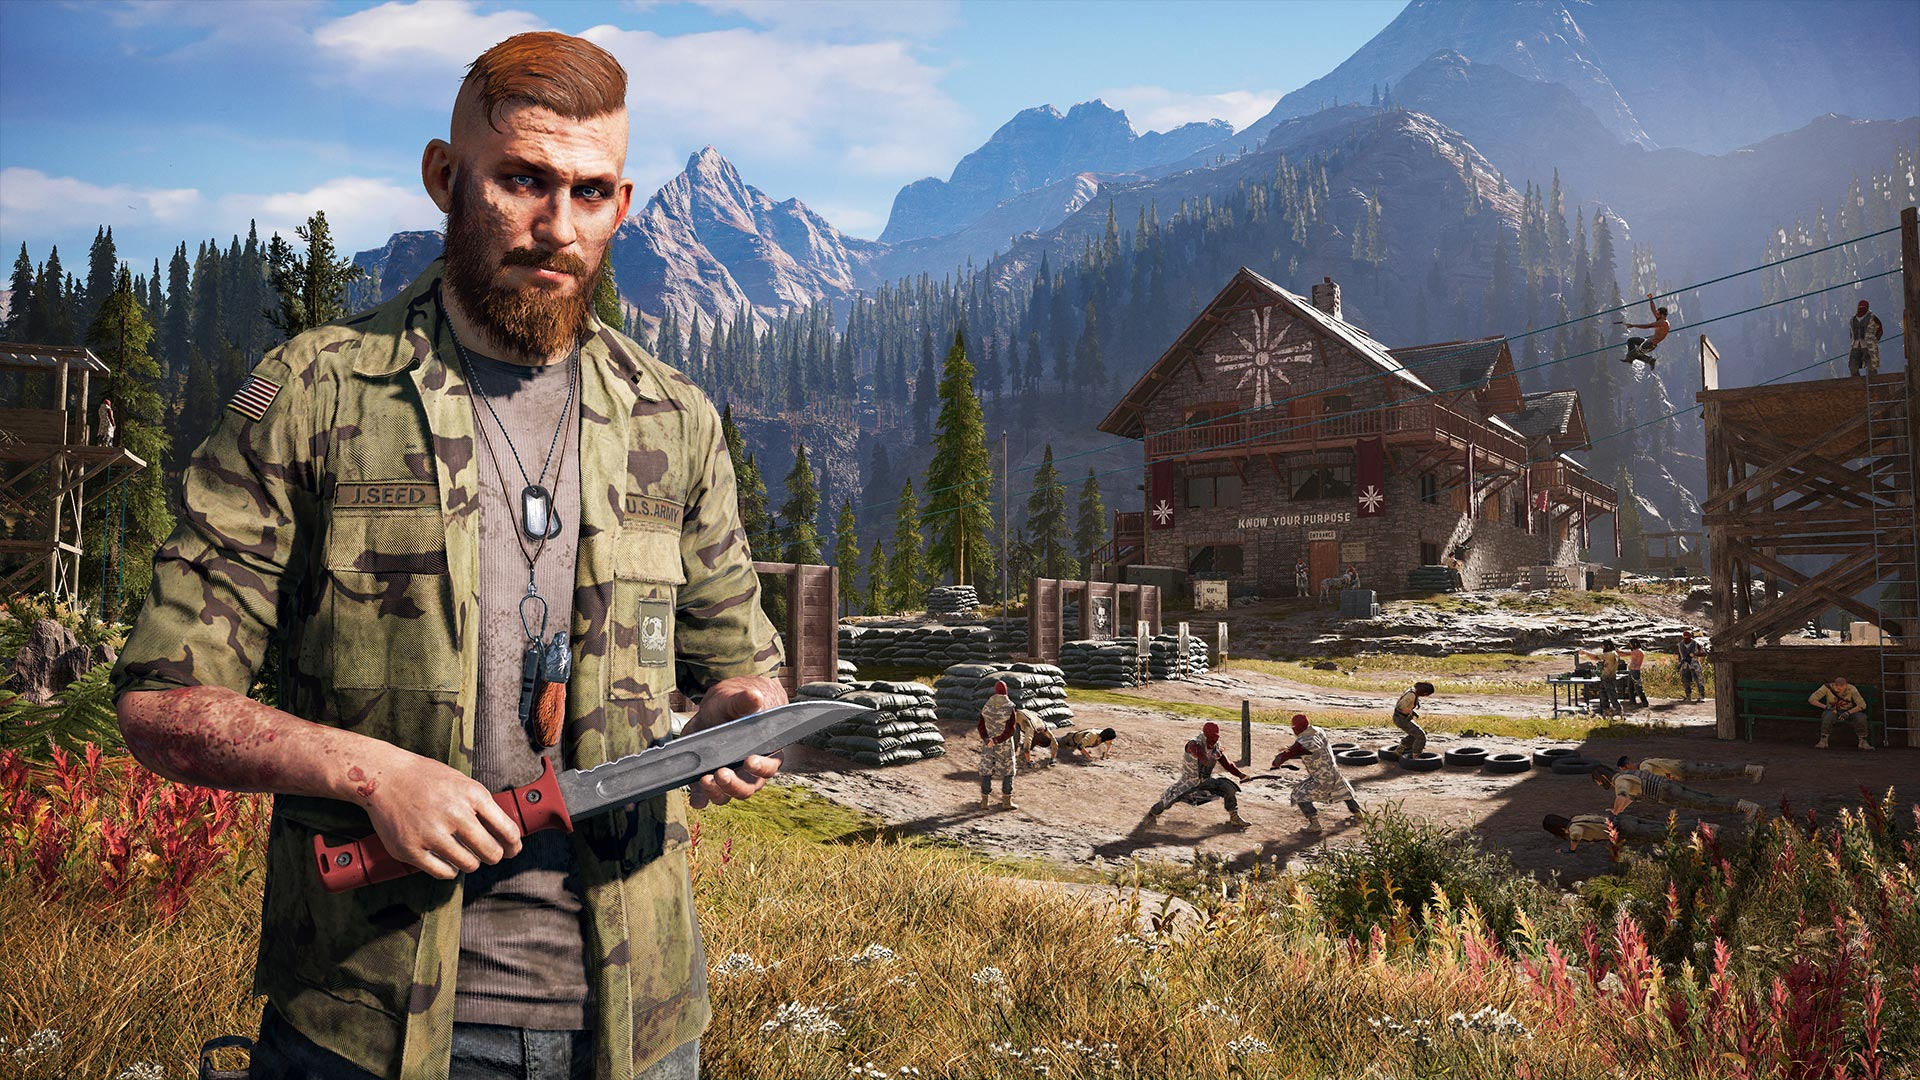 Far Cry 5 Hands-On: A Co-Op Blast with a Cult Twist | Tom's Guide